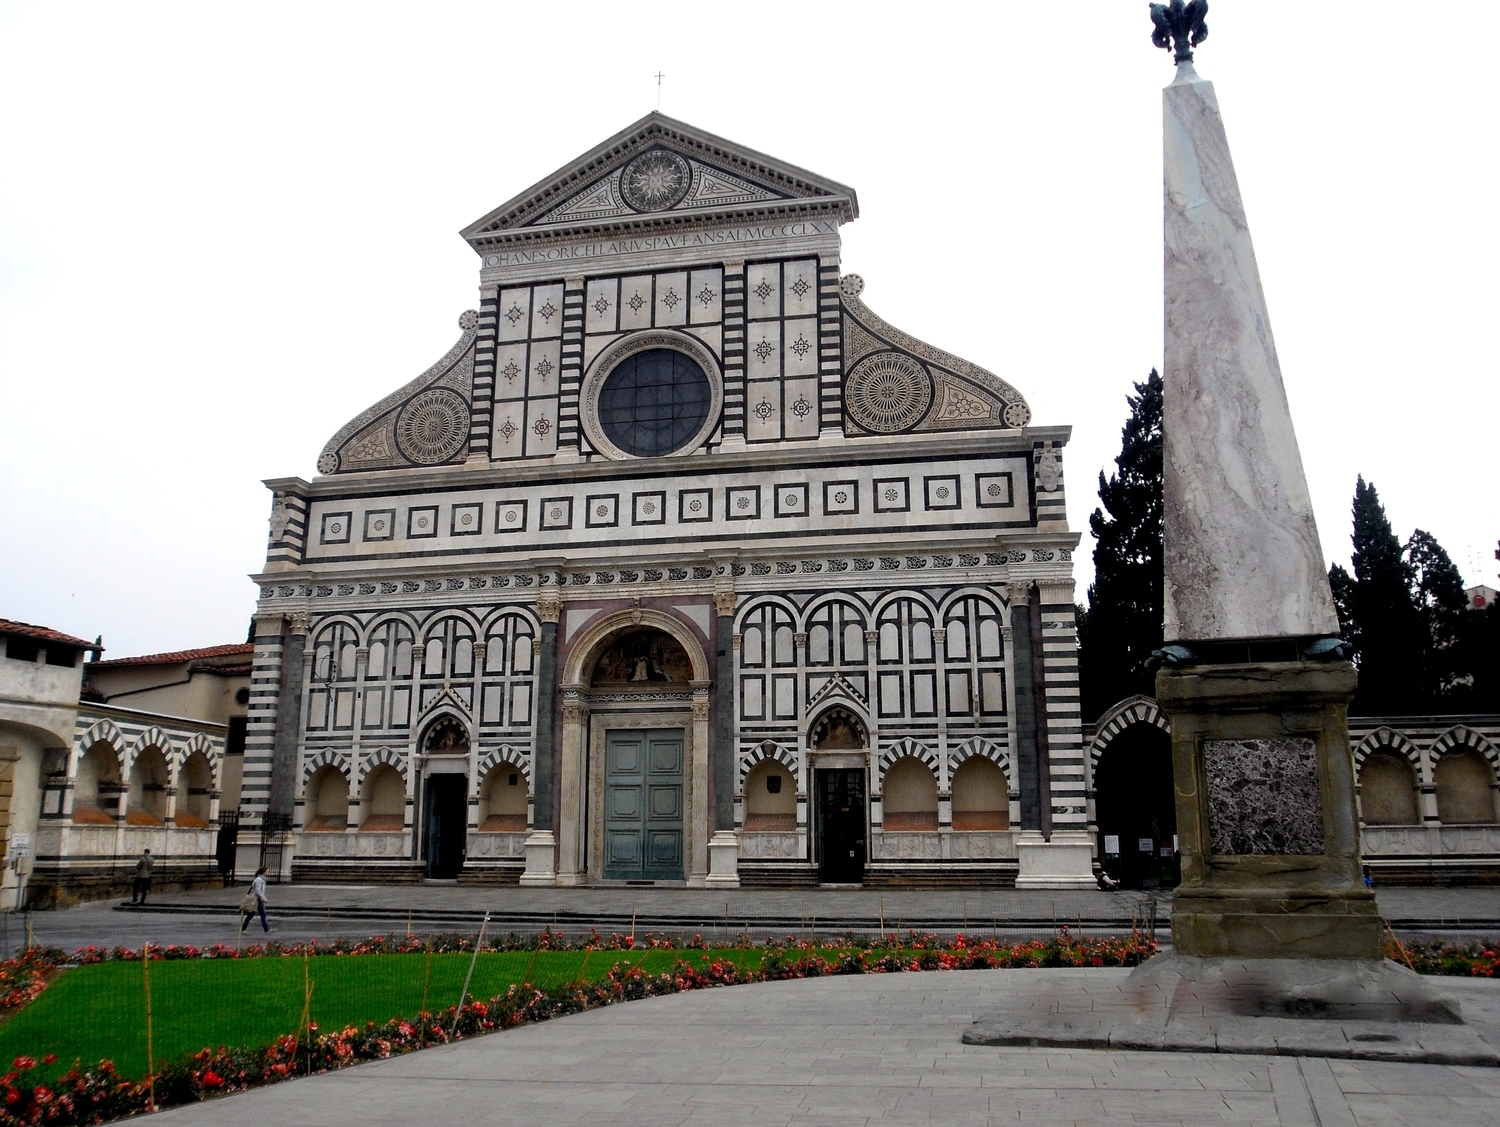 Santa Maria Novella in Florence (Firenze), photo by me.